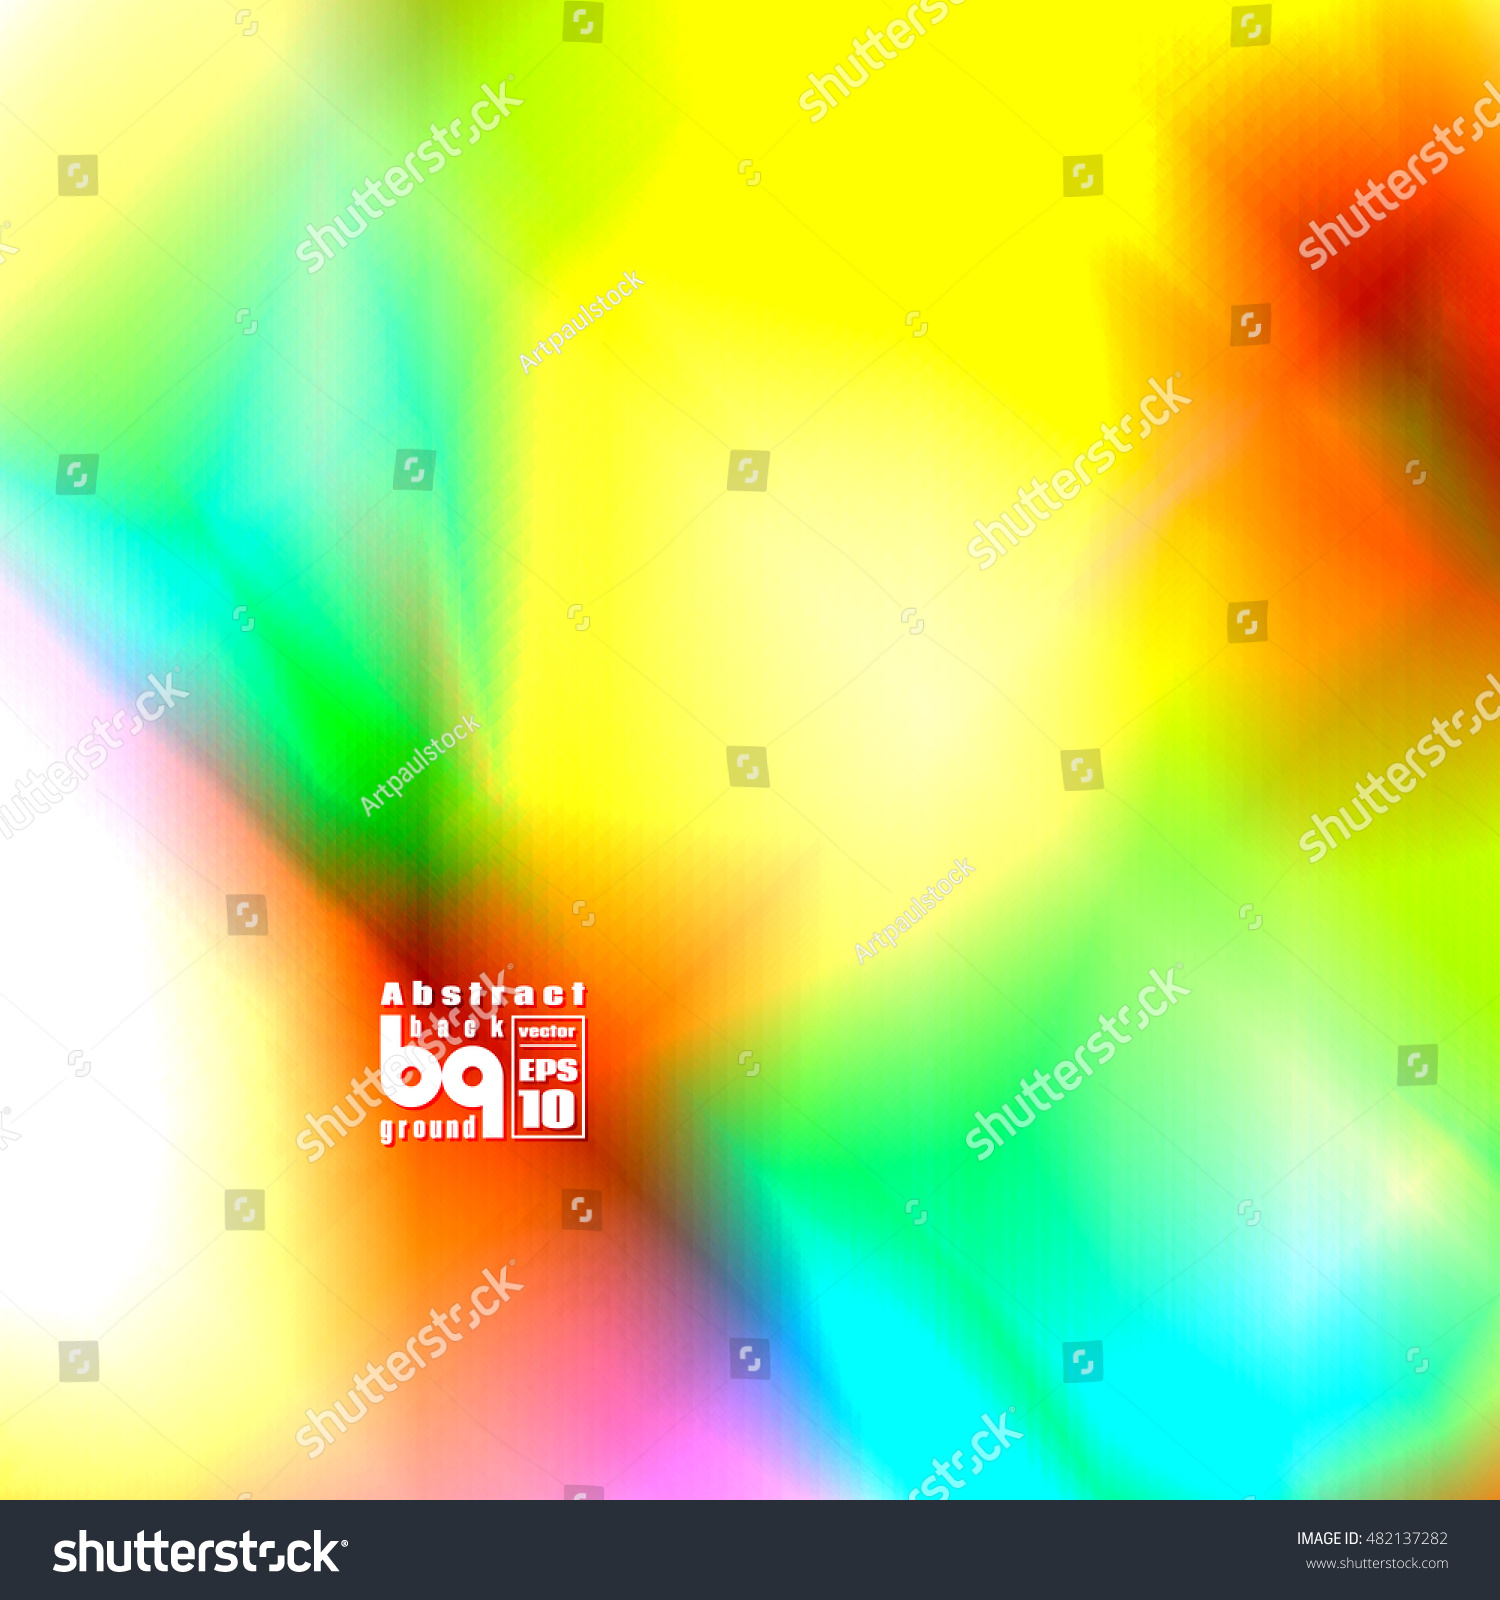 Background Flash Abstract Infinity Vector Illustration